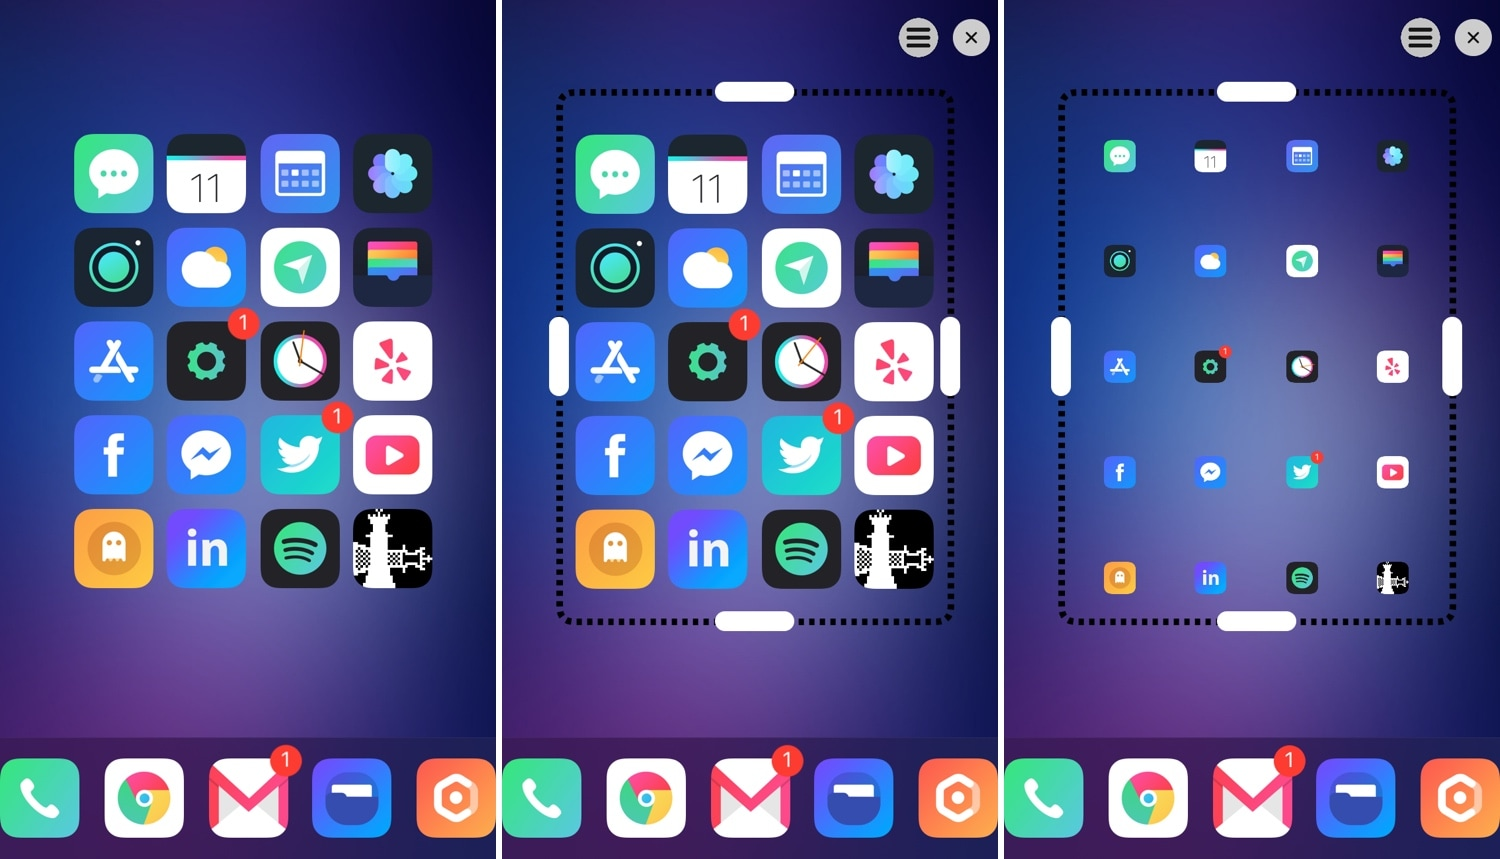 Boxy 4 Brings Custom Home Screen Layouts On Pwned Ios 13 Devices